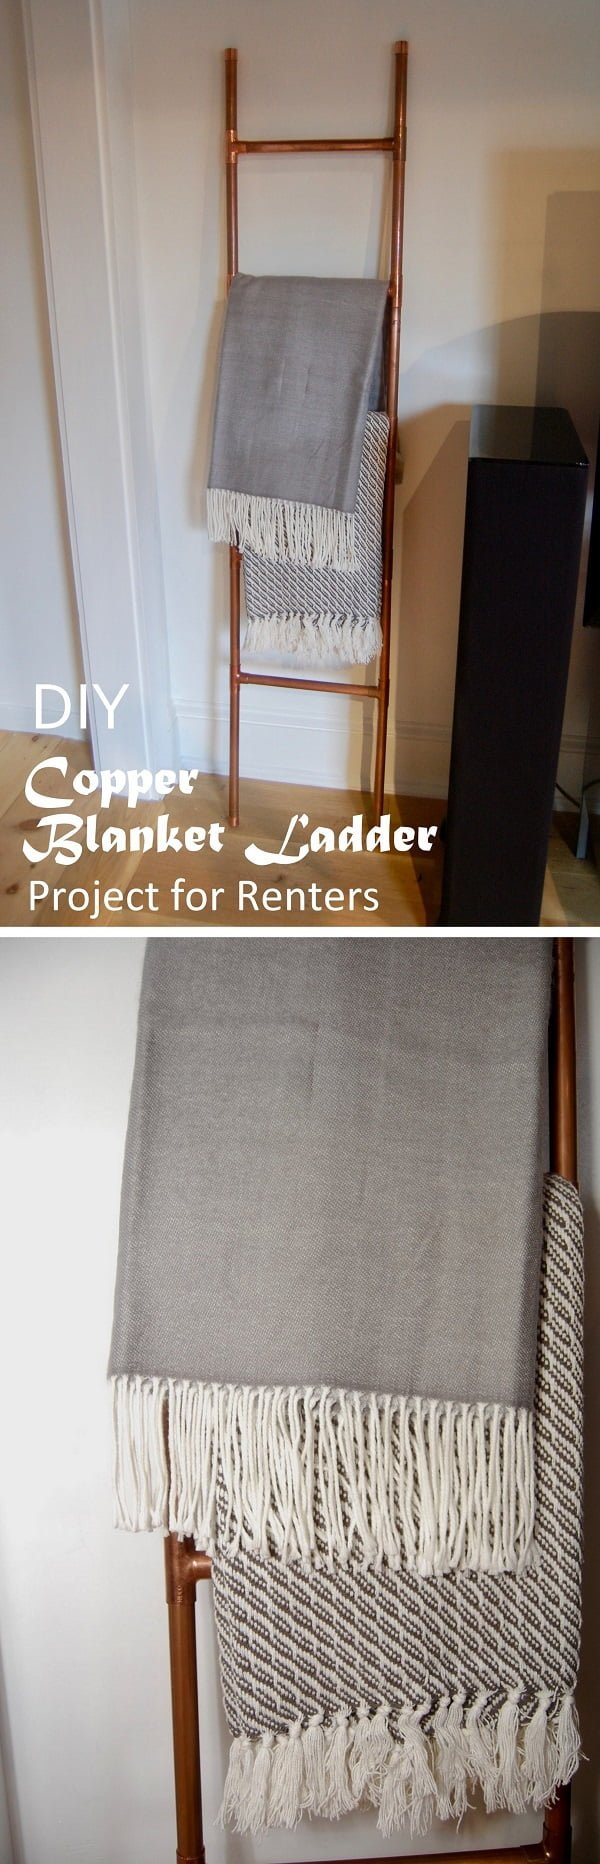 Check out this easy idea on how to make a #DIY copper pipe blanket ladder #homdecor for #renters #crafts #project